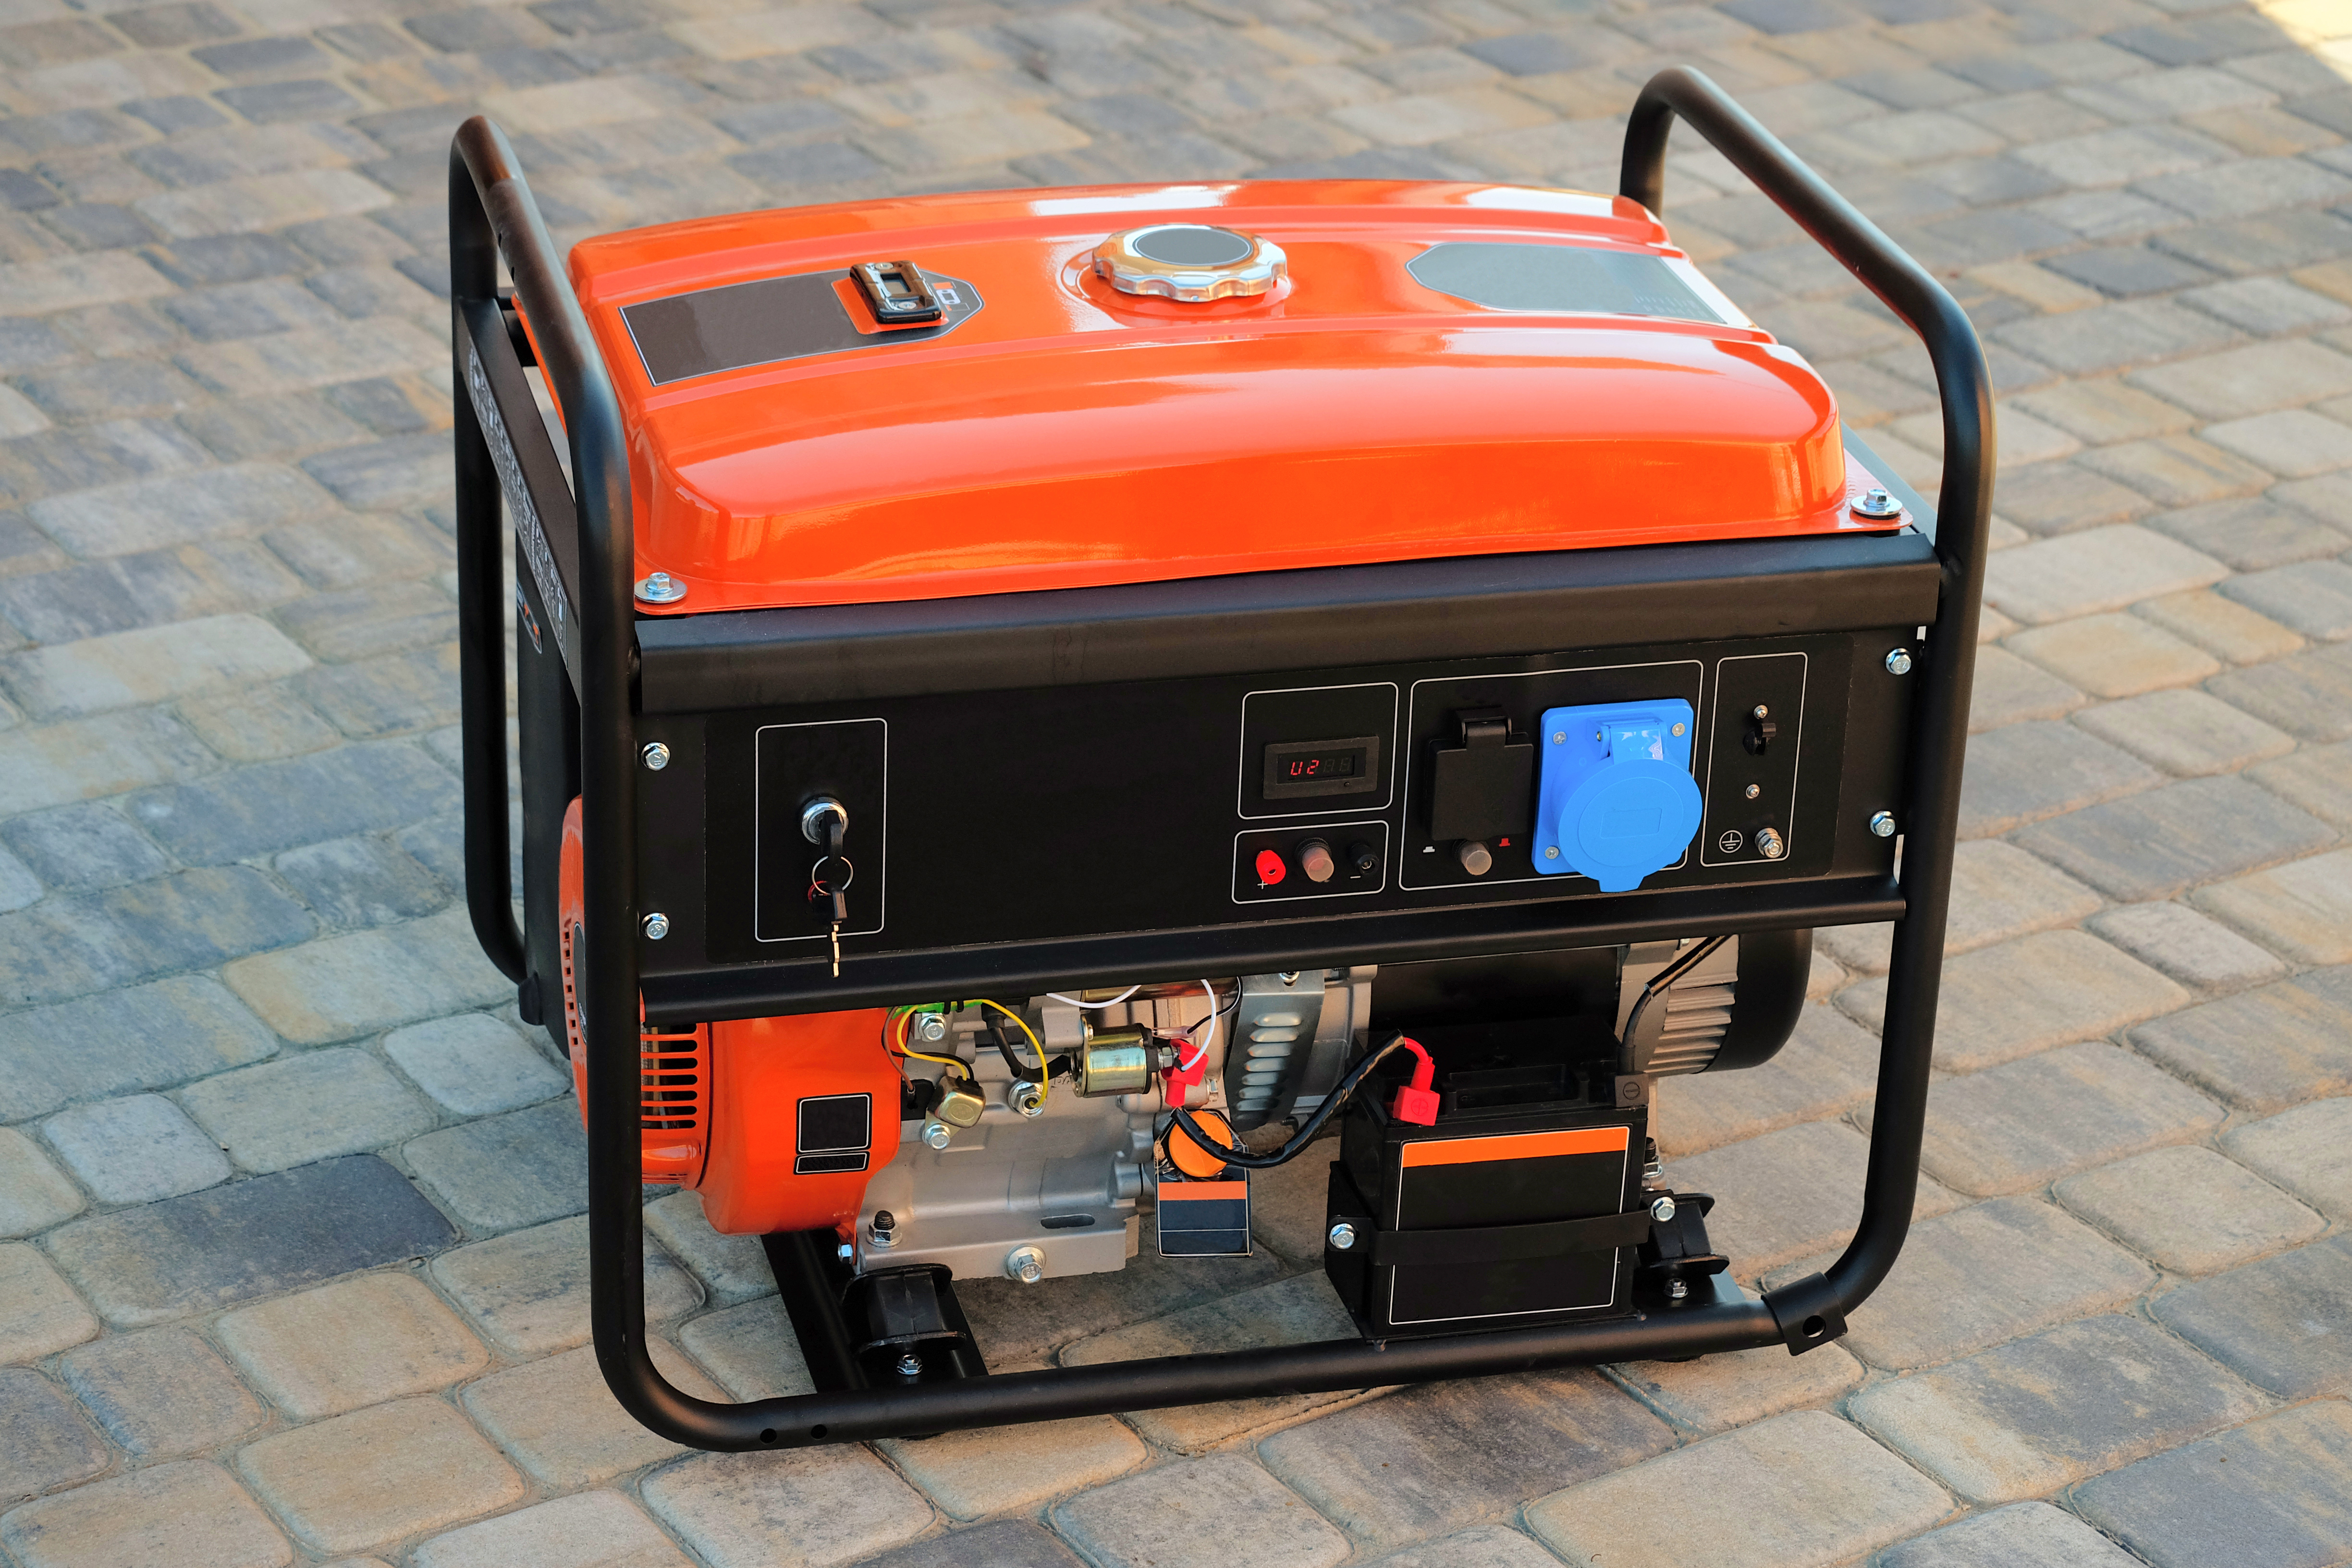 Generator Transfer Switch Portable Installation Kings How To Install A Call Electrical Air Conditioning For Professional And